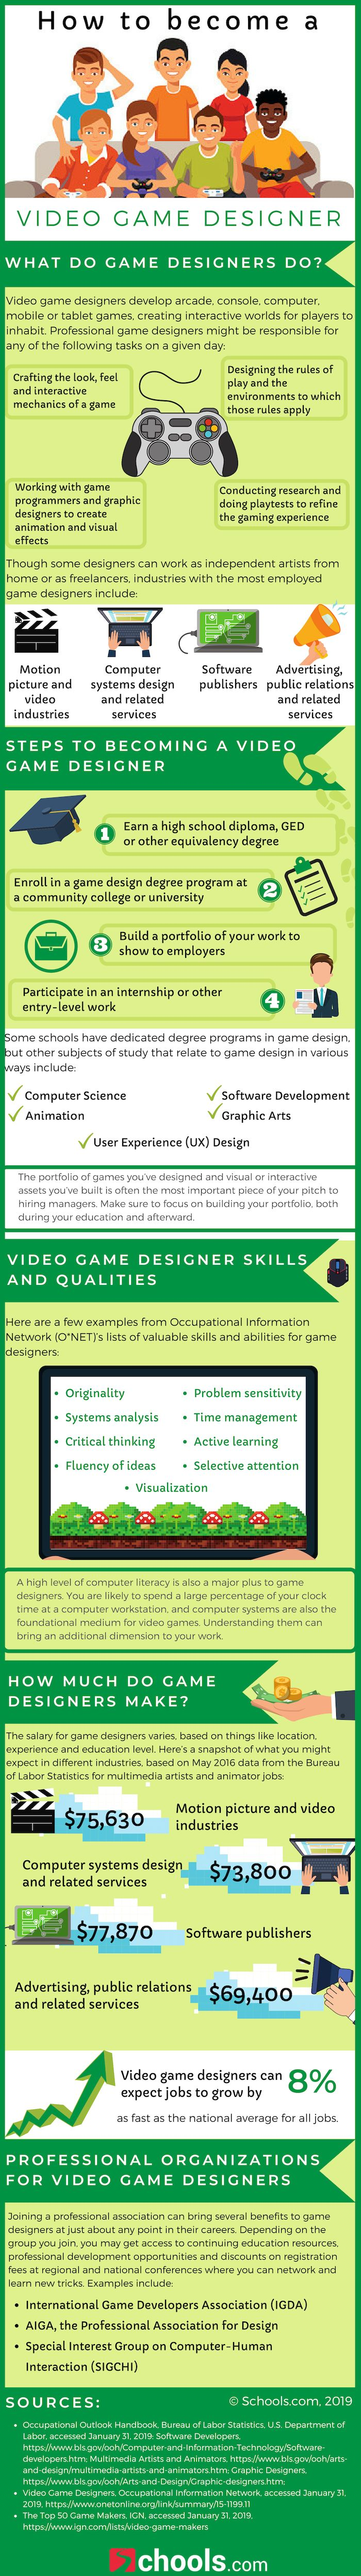 Learn what game designers do, how to a video game